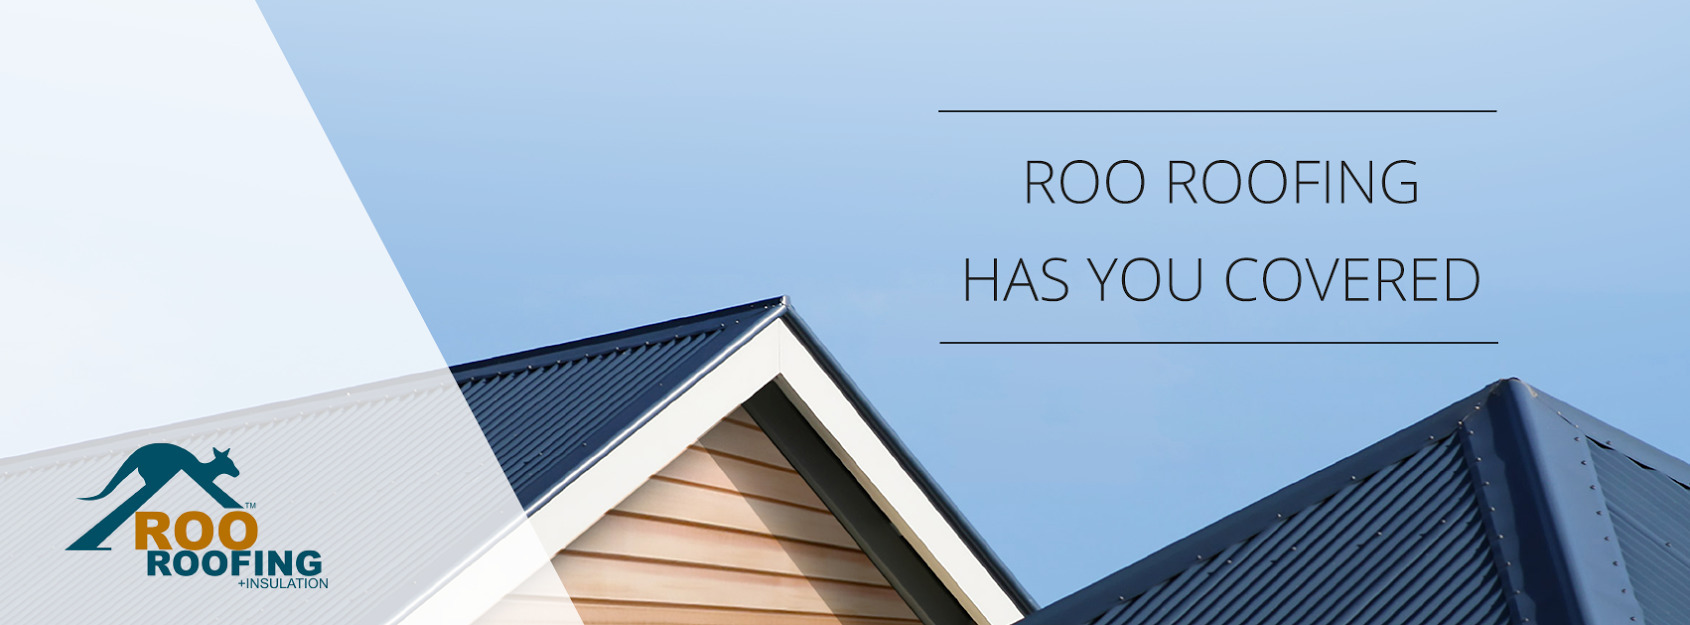 Roo Roofing (@rooroofing) Cover Image